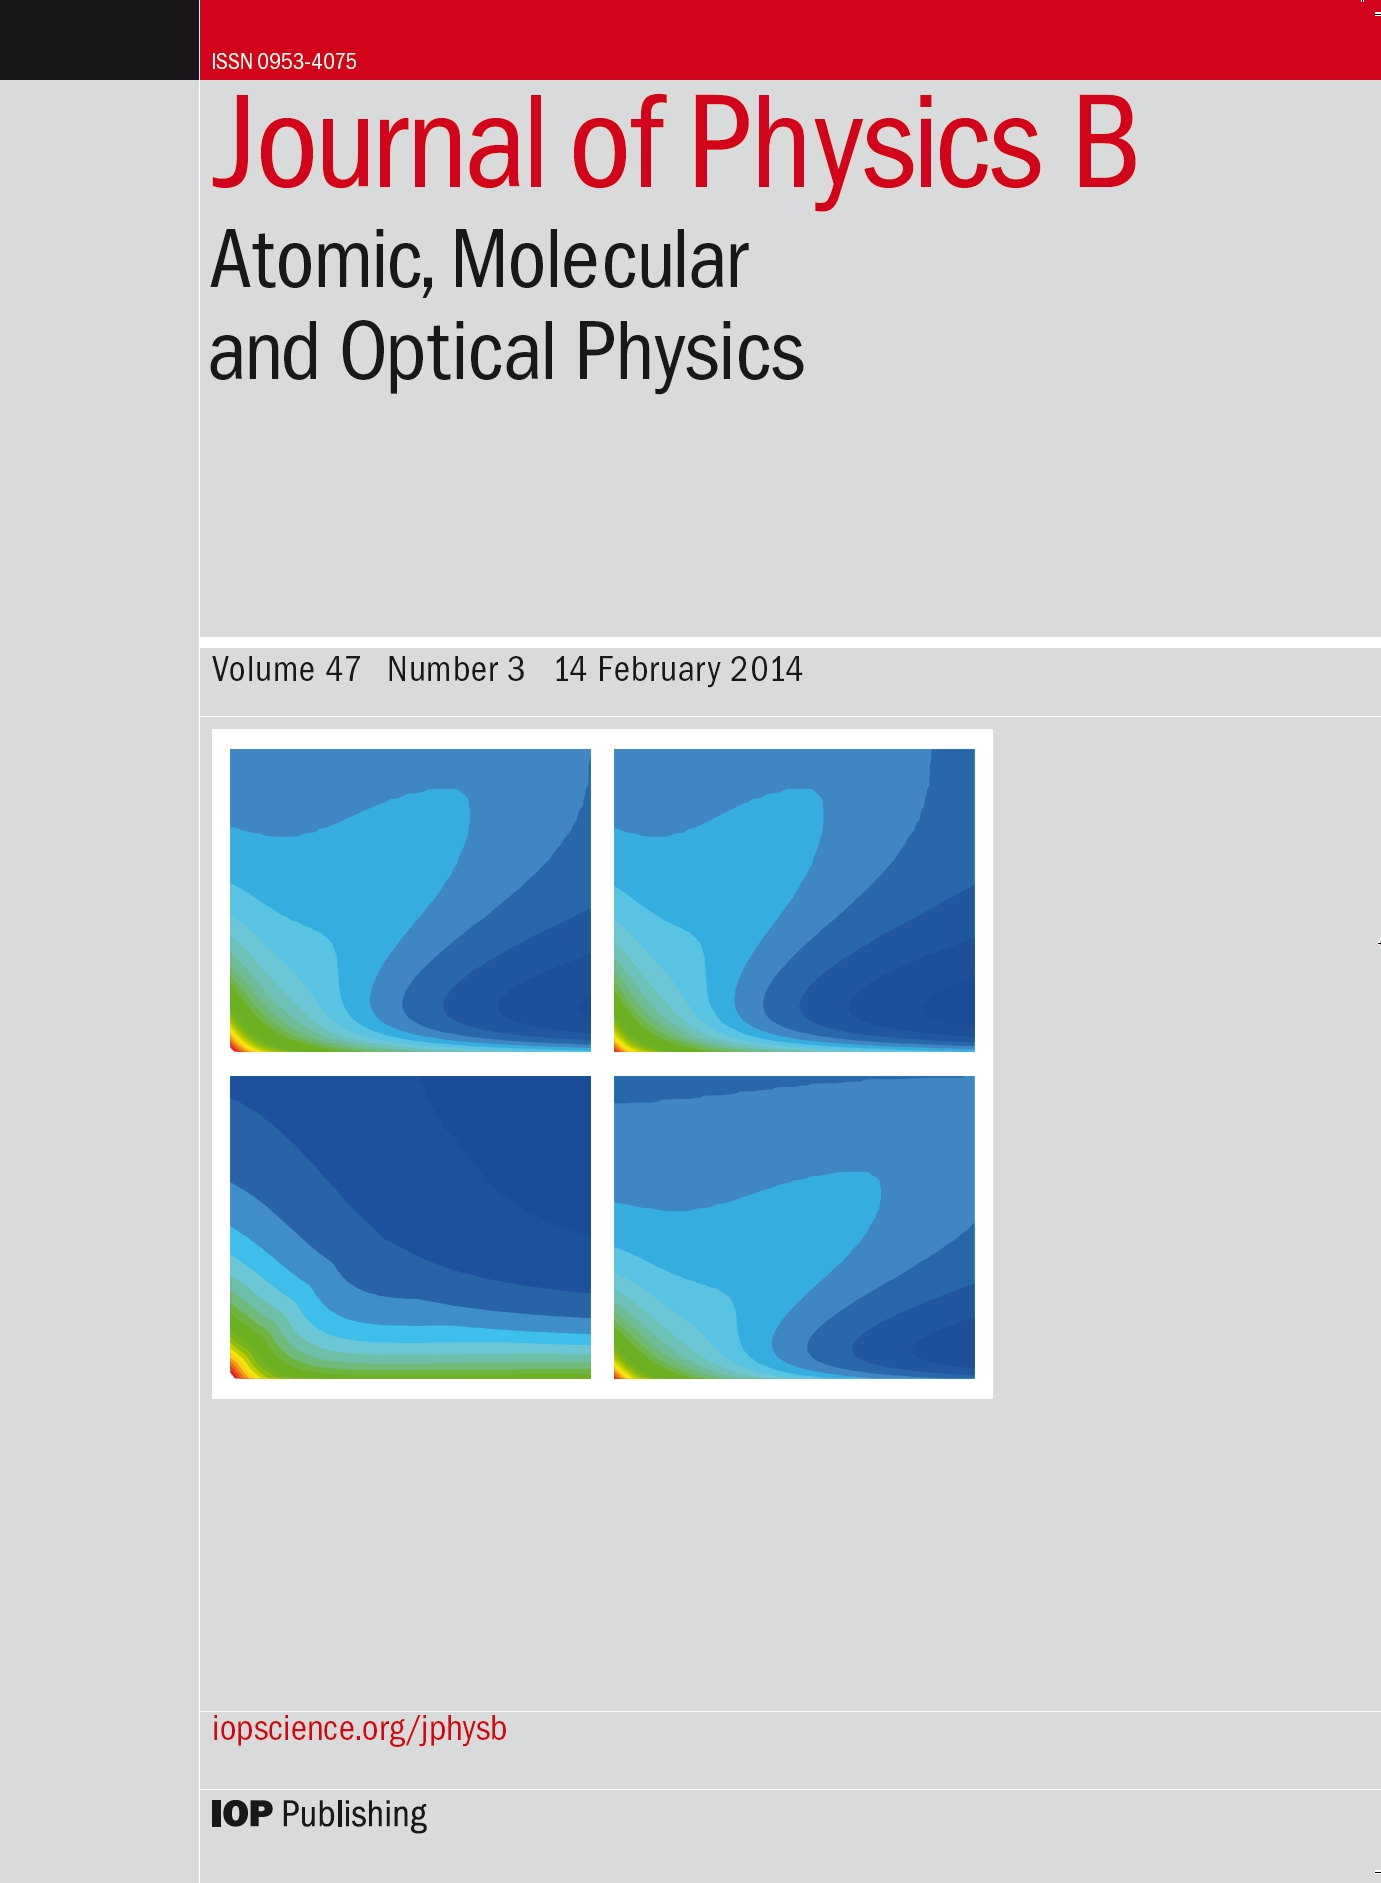 Journal of Physics B Cover